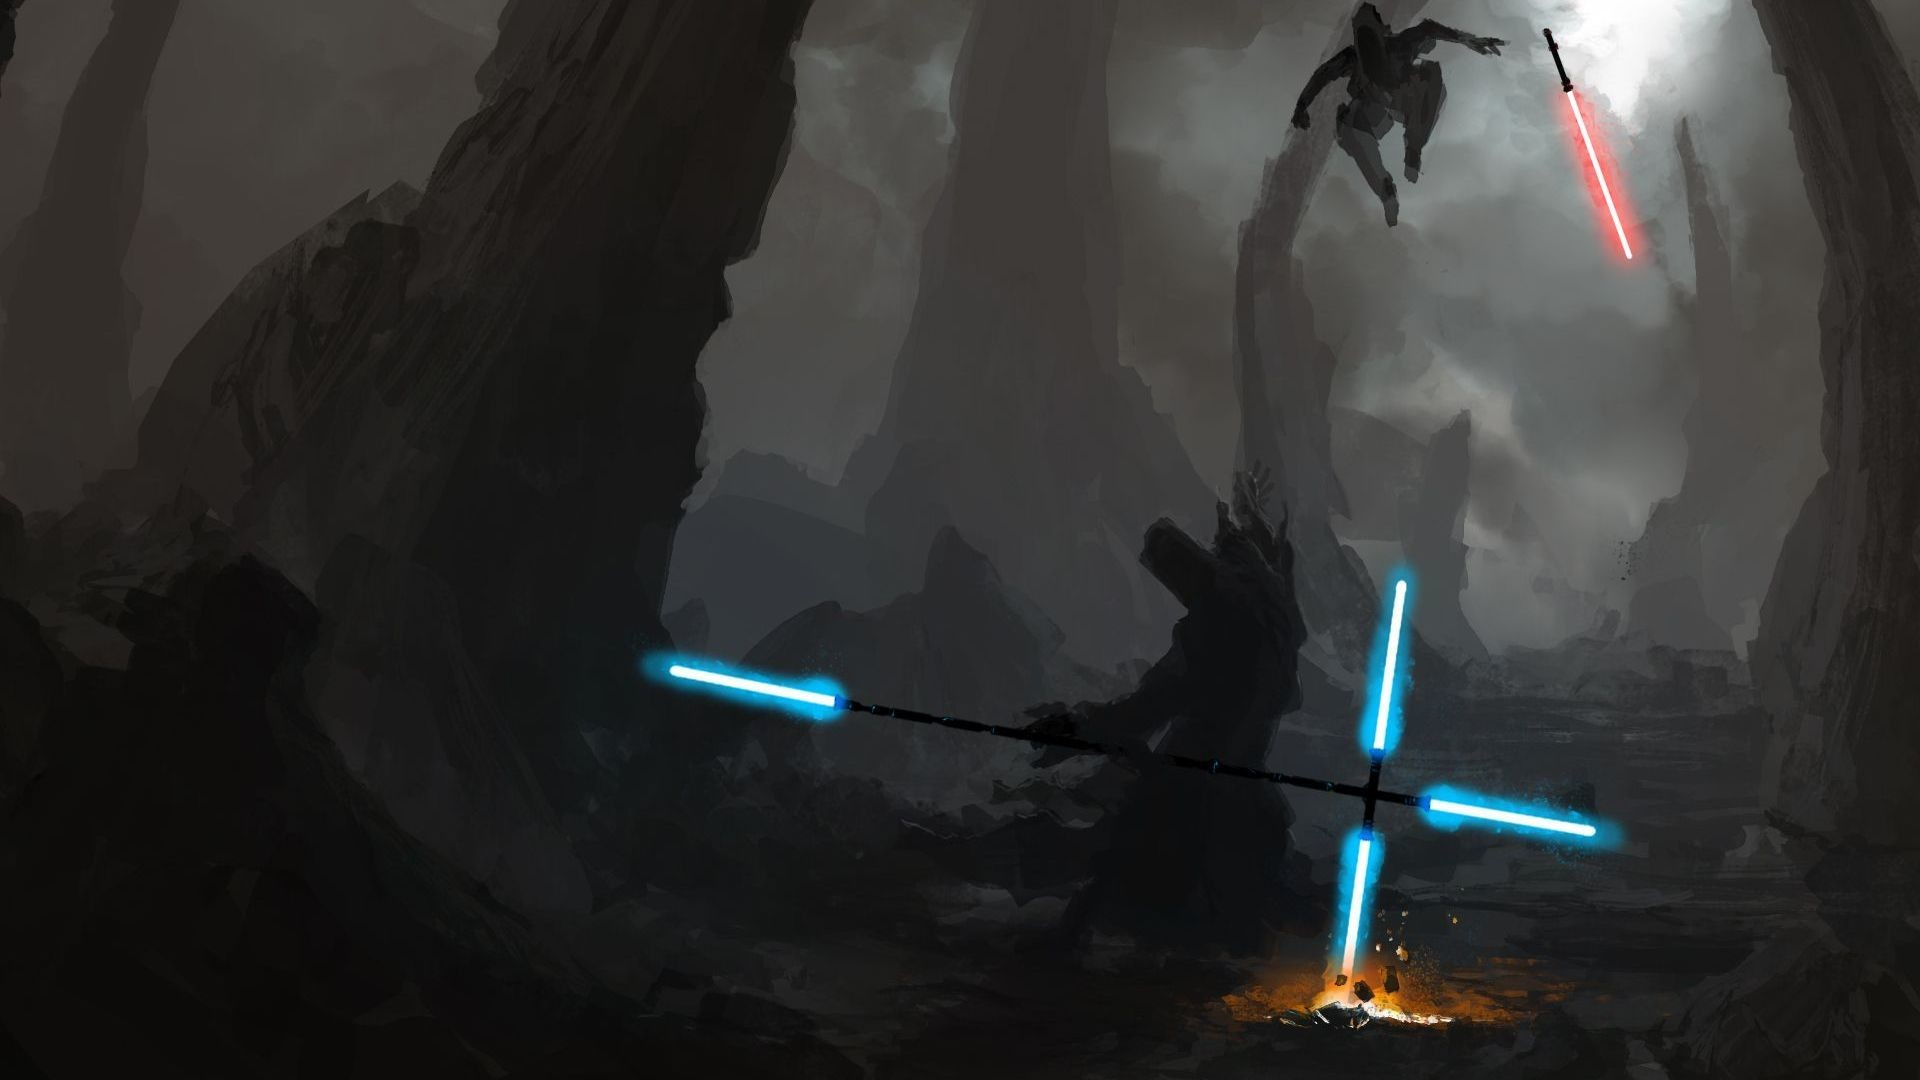 Star Wars Lightsaber Duel Wallpaper Posted By Ethan Mercado